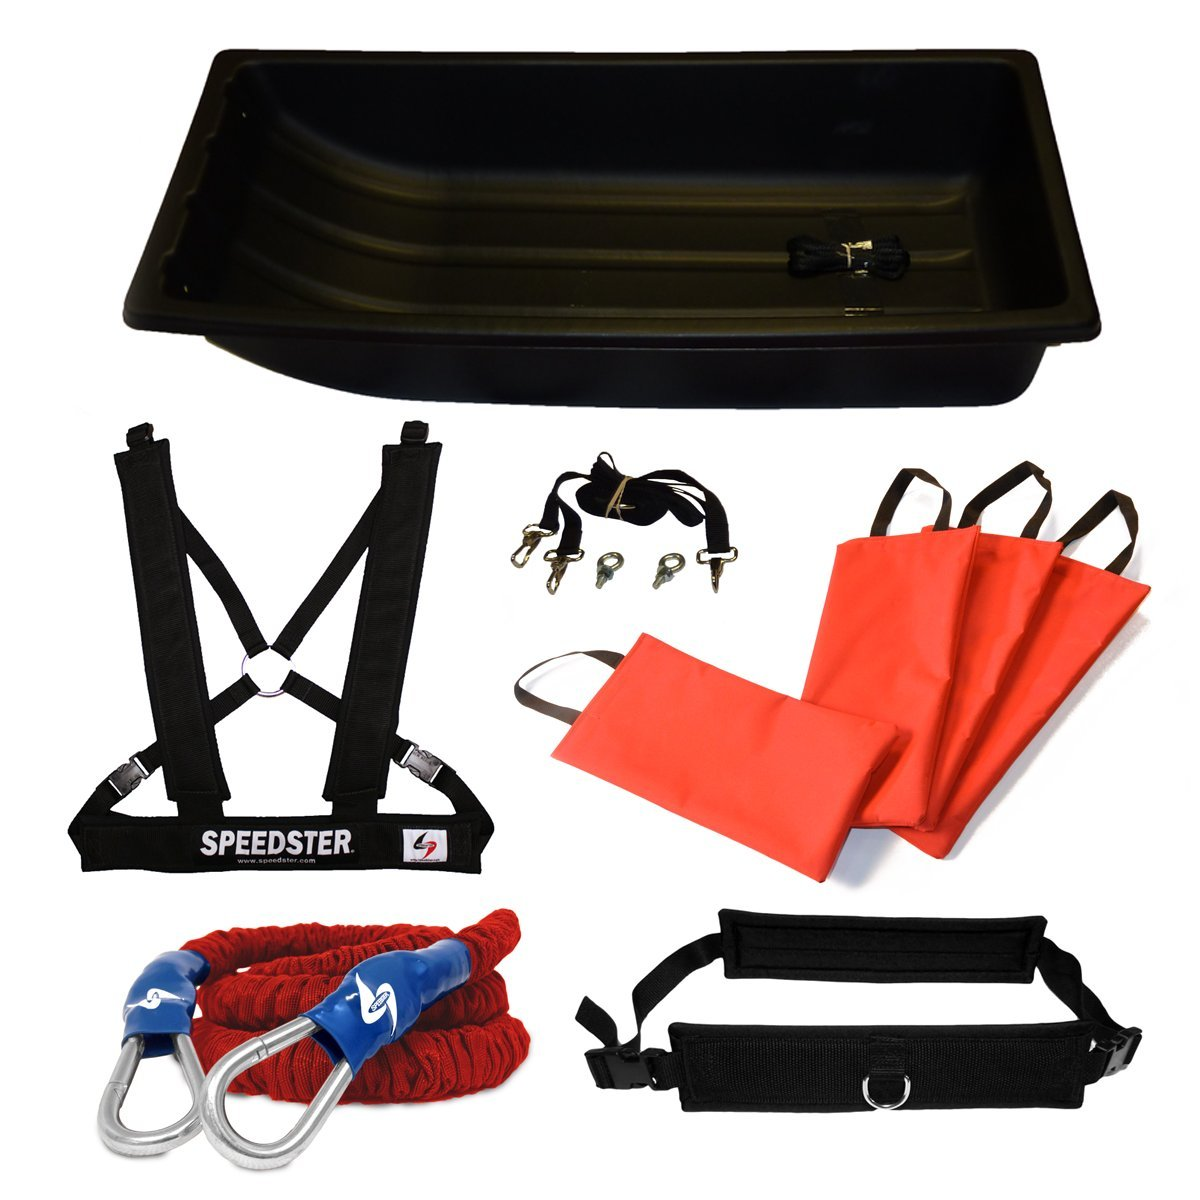 Speedster Torpedo Jet Sled & Resistance Bungee Kit - Includes Padded Harness & Belt, 4 Weight Bags, and All Accessories for Speed Training